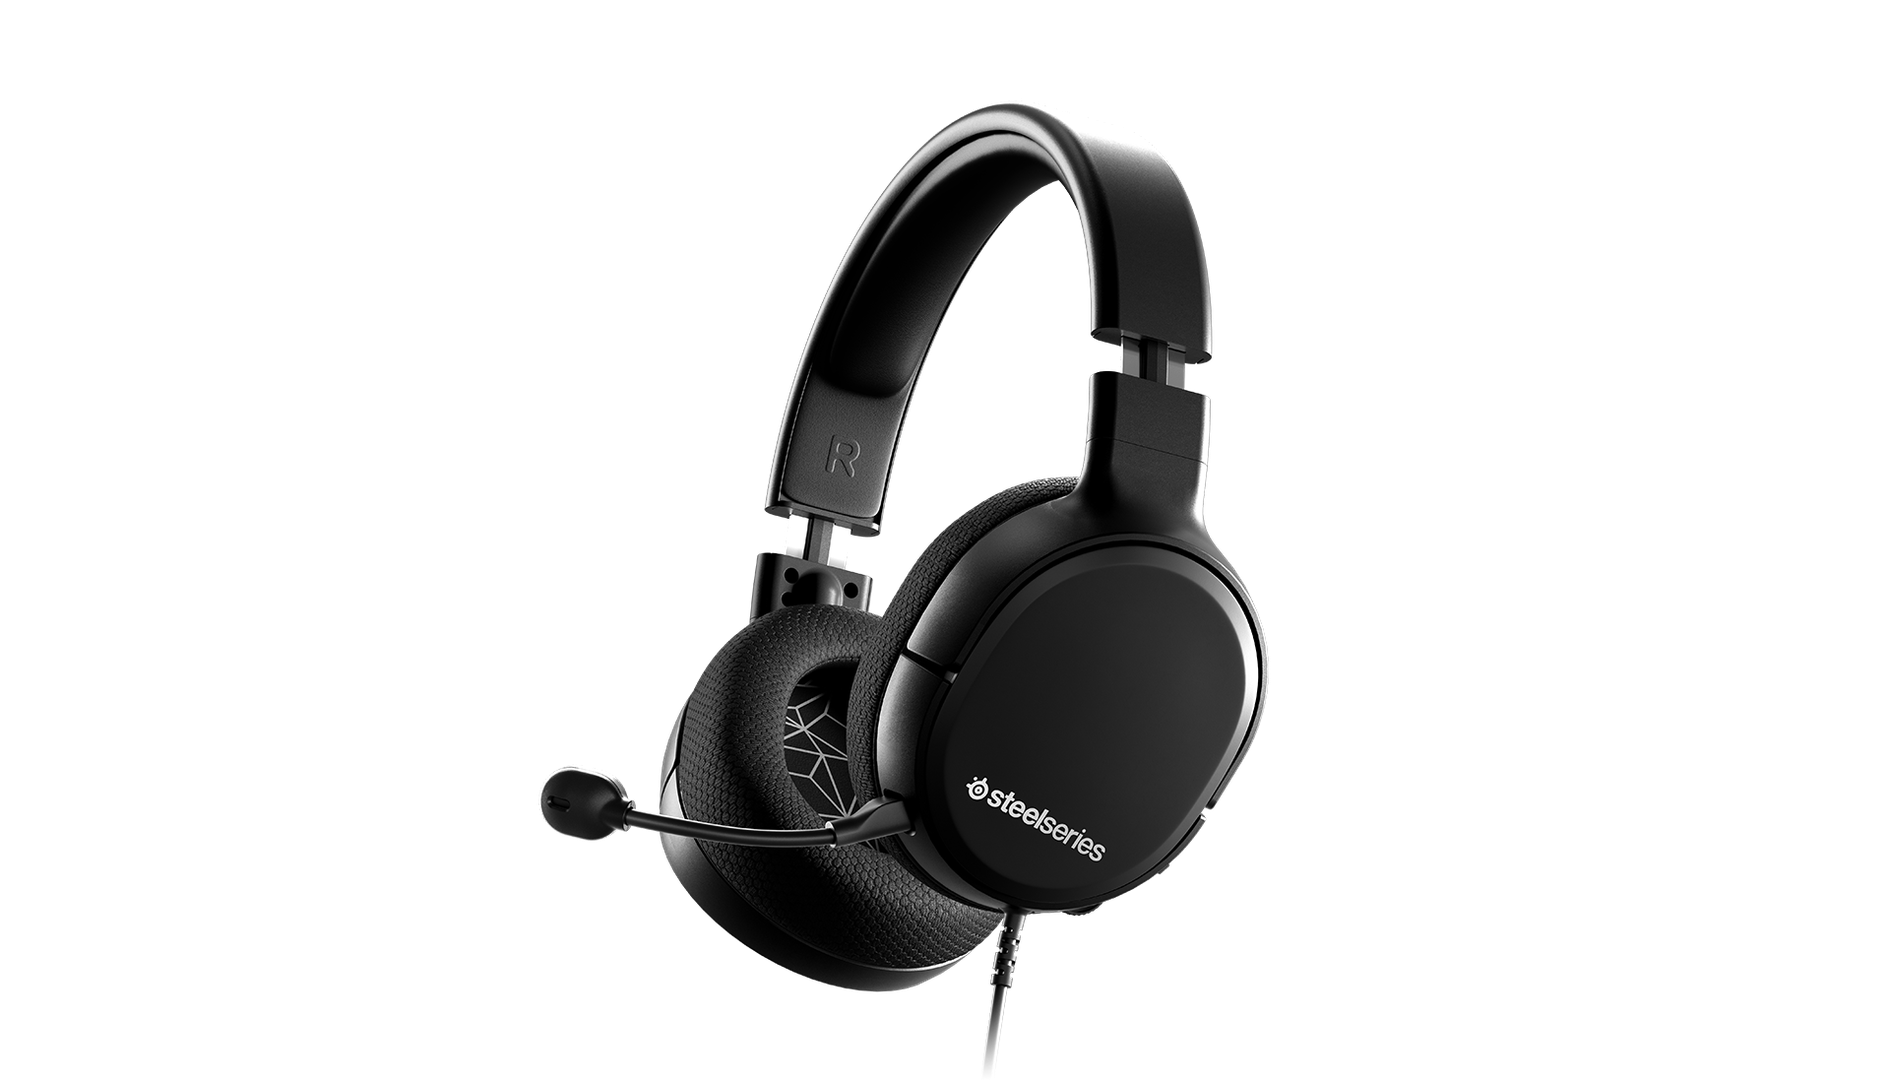 SteelSeries Arctis 1 Gaming Headset for PC, PS4, XBOX, Switch